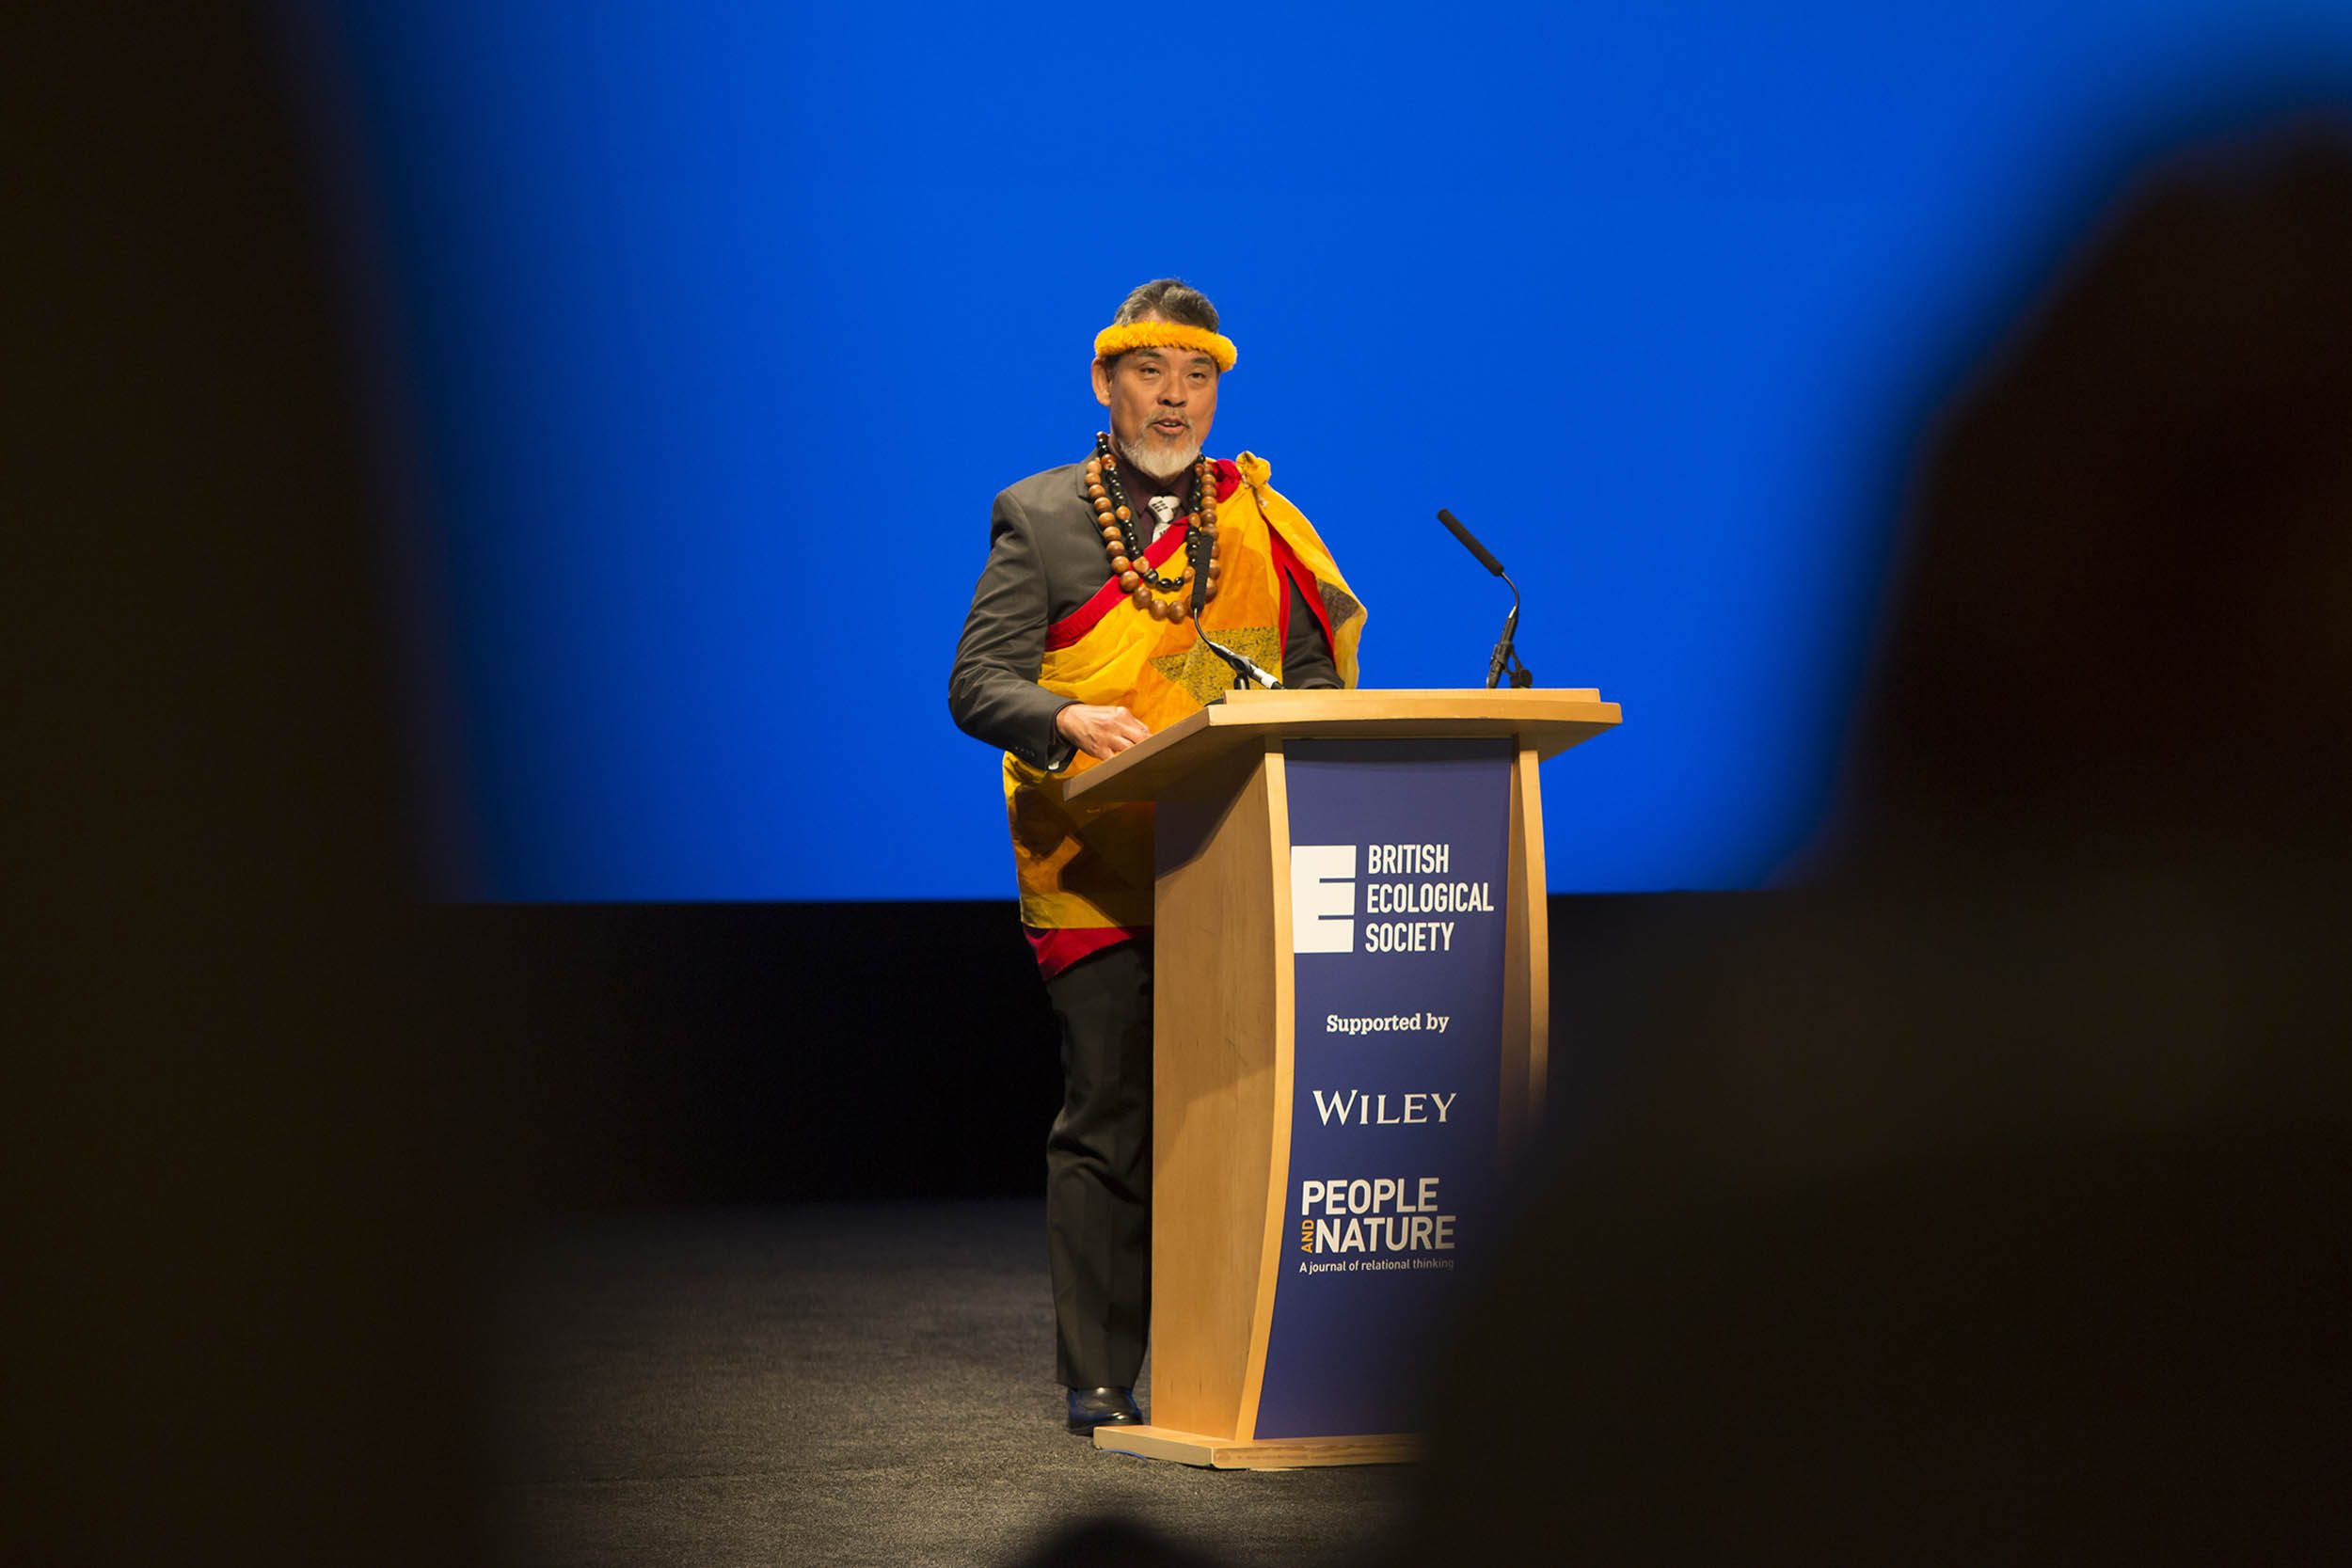 A photograph taken at a conference in Edinburgh of the British Ecological Society